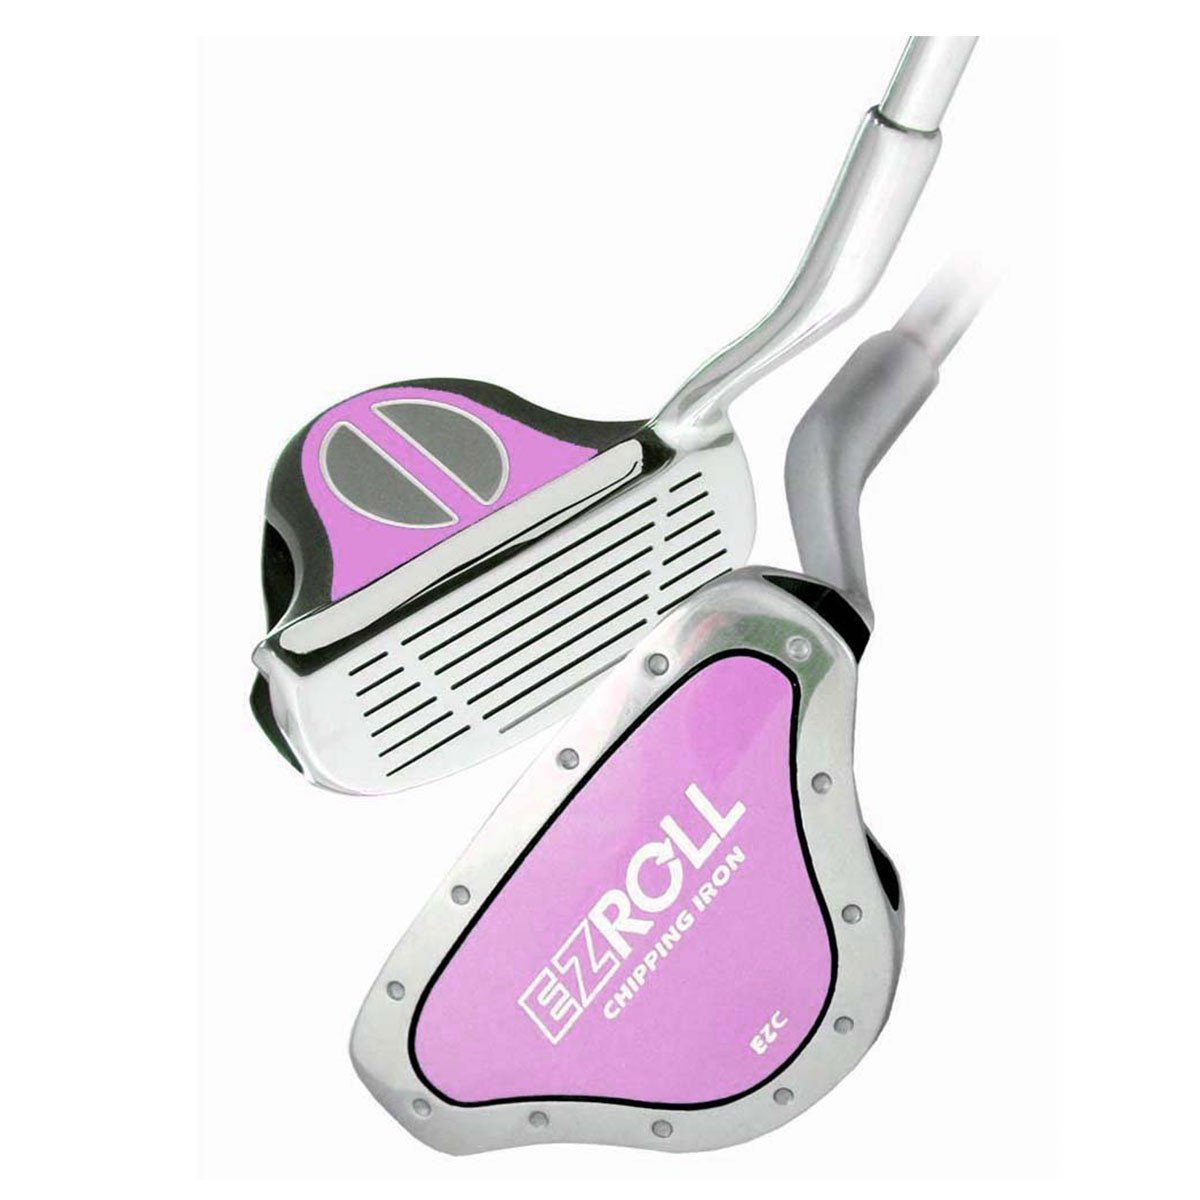 Intech EZ Roll Ladies Right Hand Pink Golf Chipper - 33 ½ Inches by Intech EZ (Image #3)